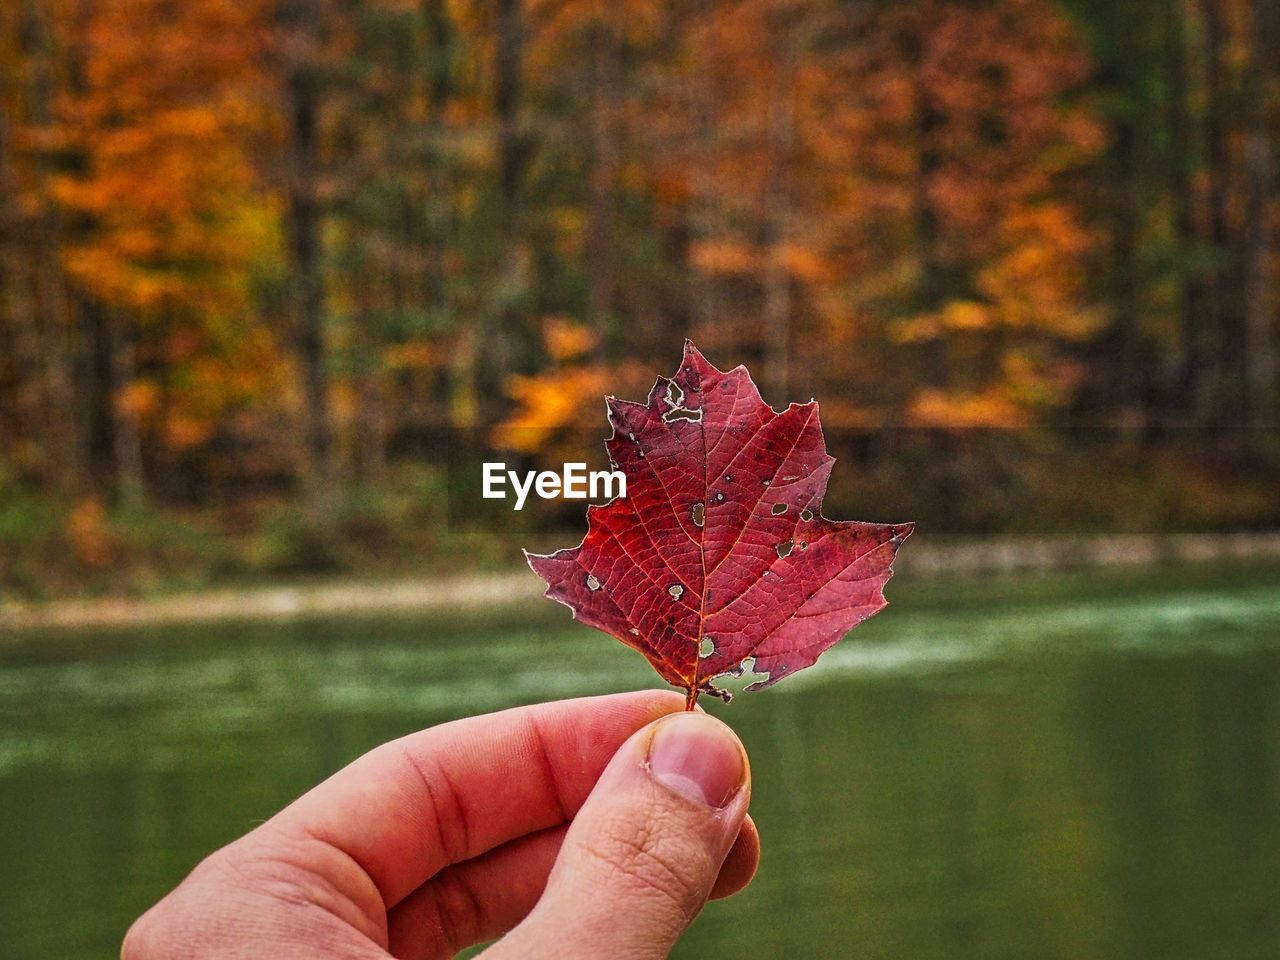 Close-up of hand holding maple leaf at lake